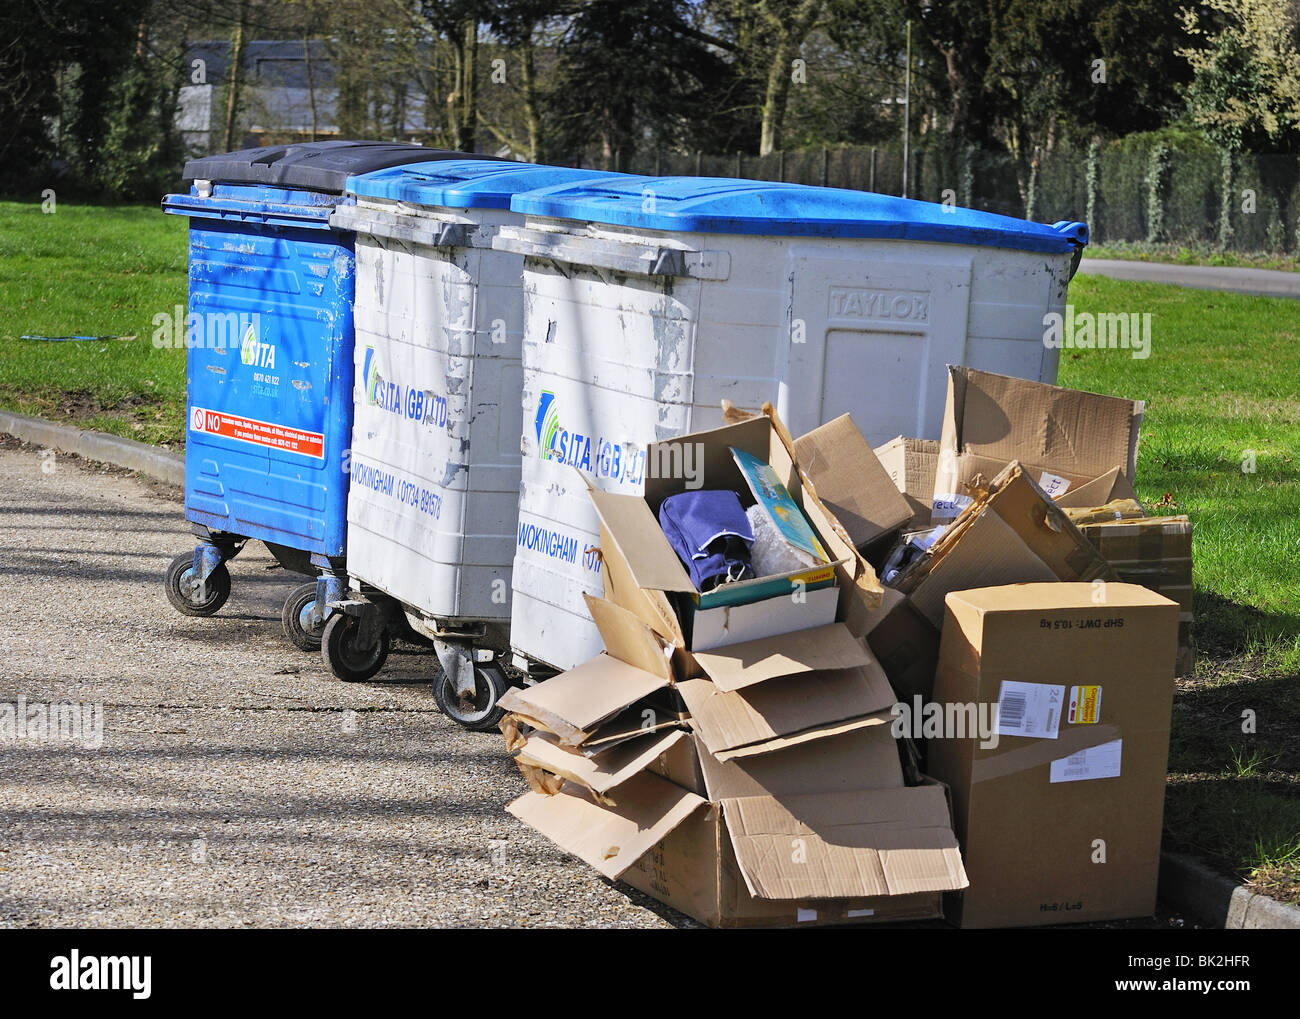 Domestic rubbish collection, - Stock Image